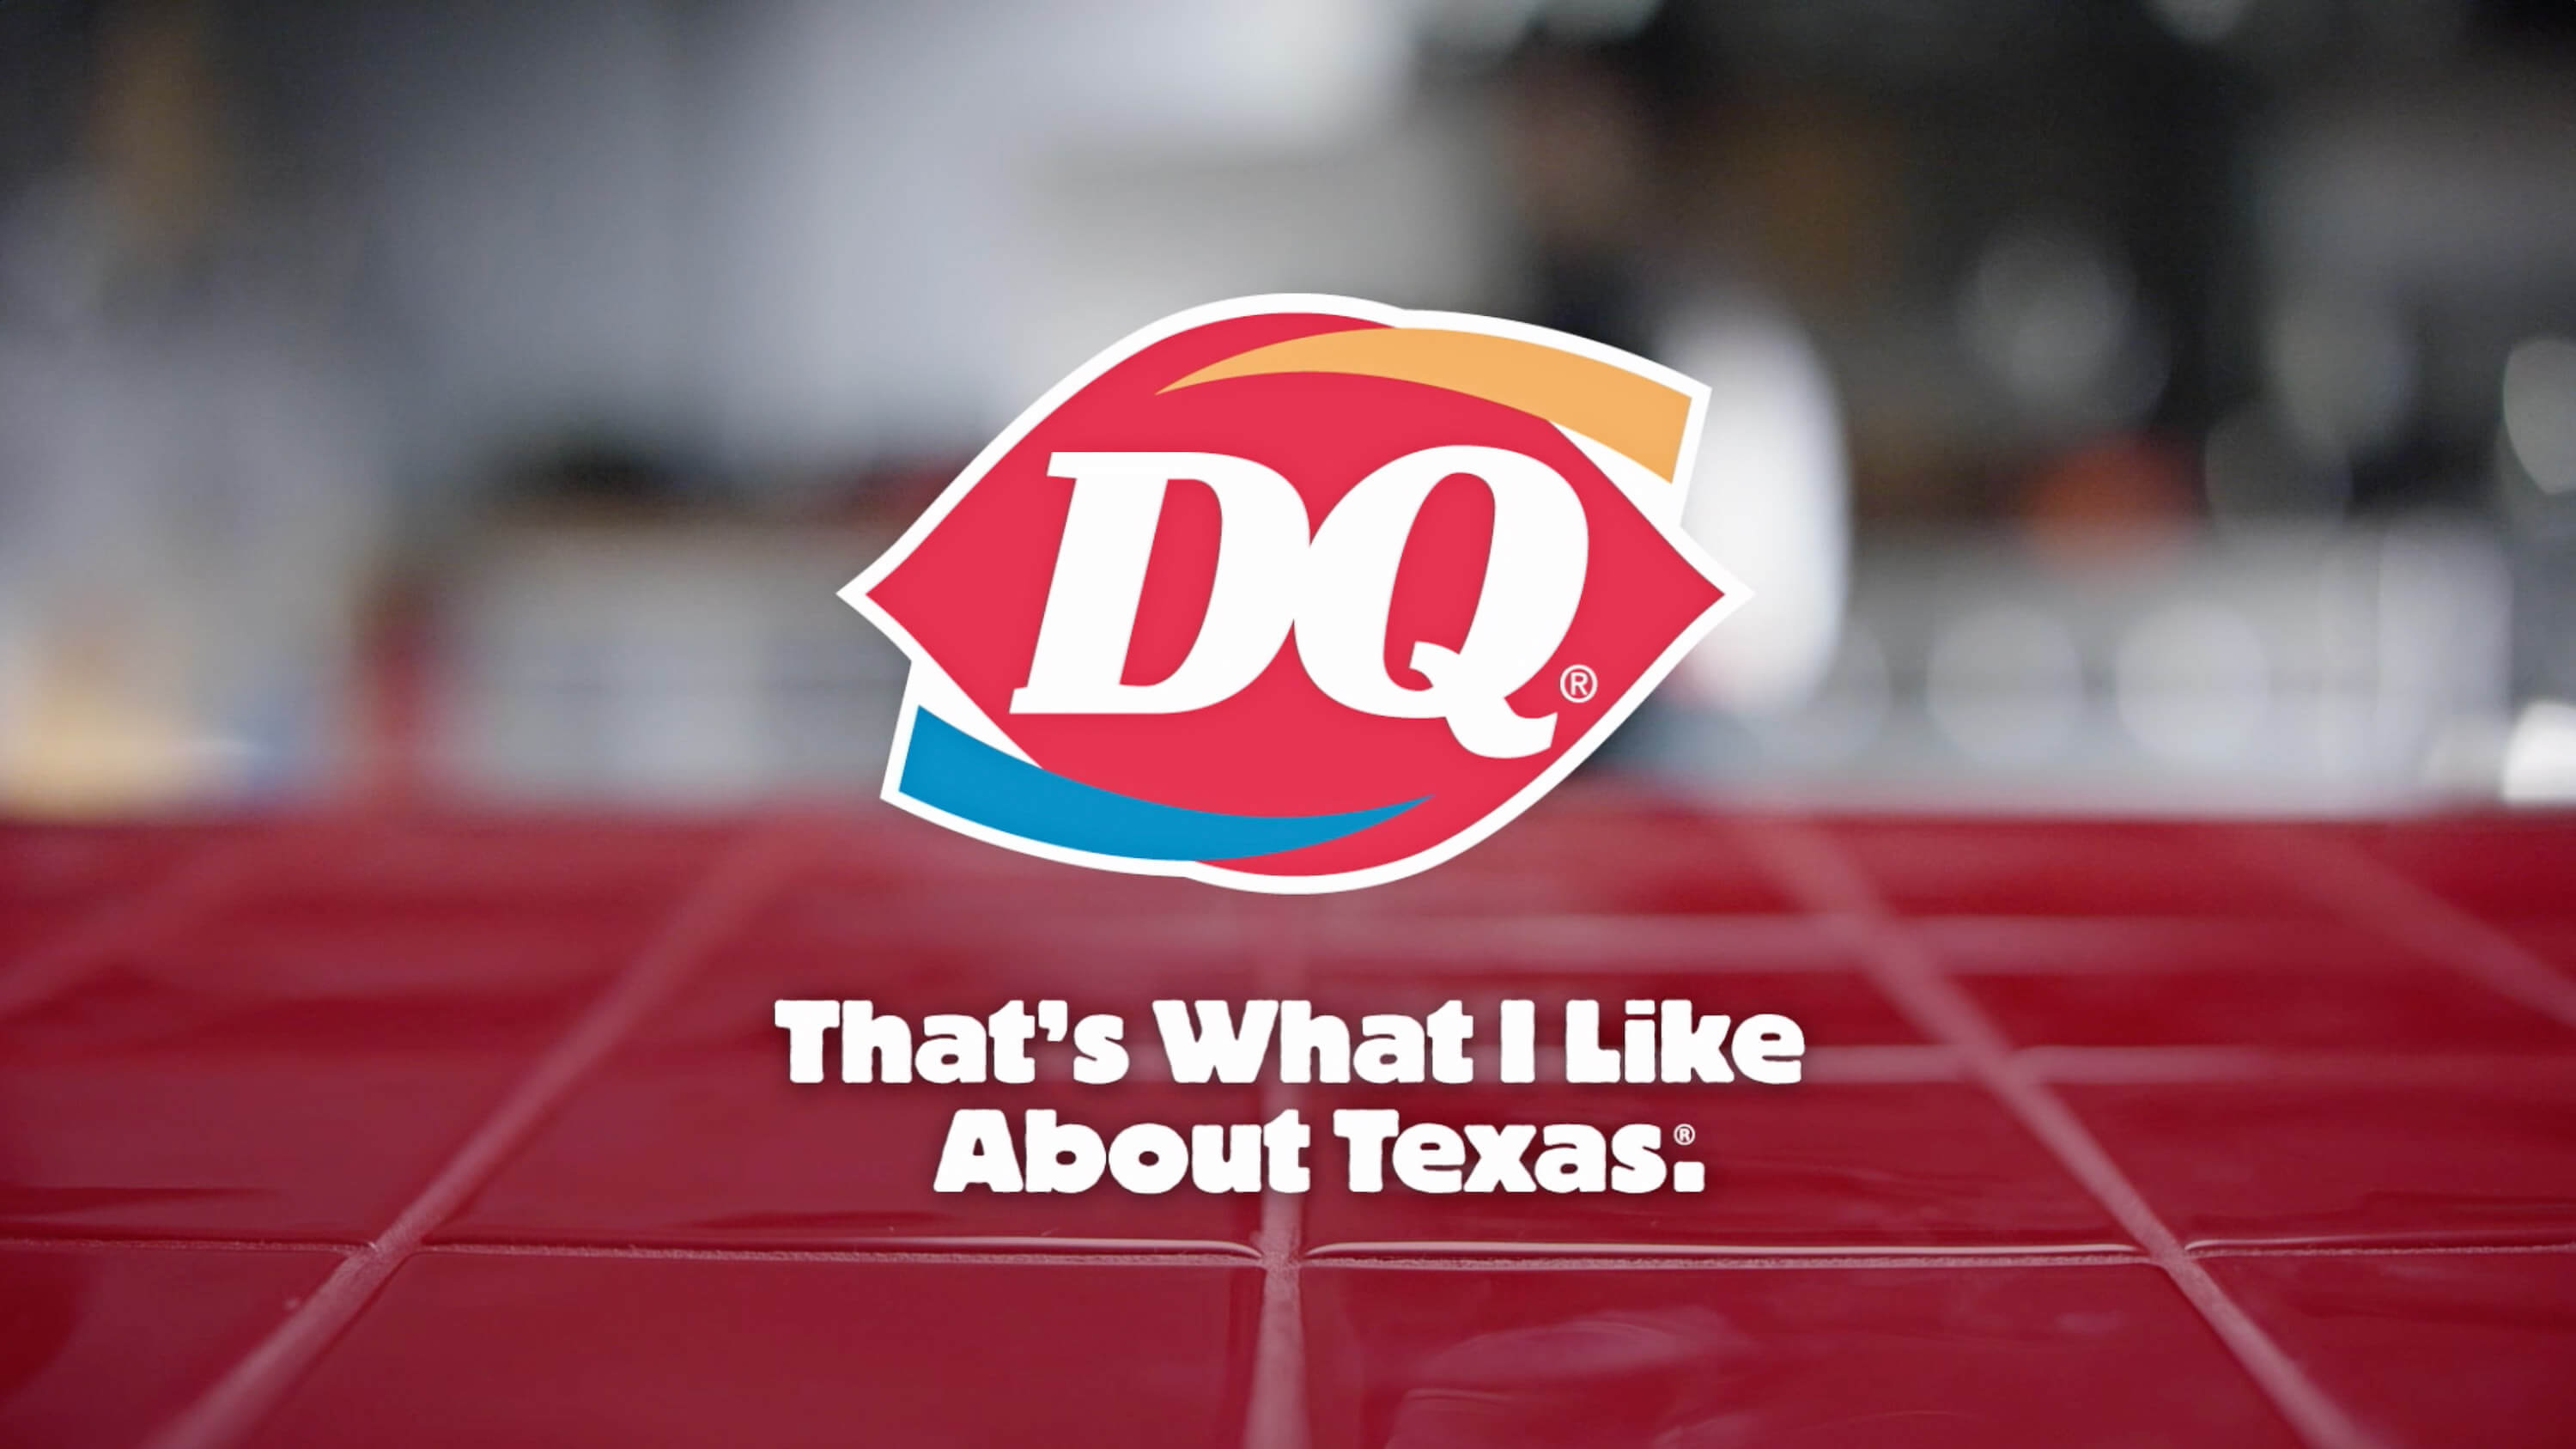 DQ Thats What I Like About Texas